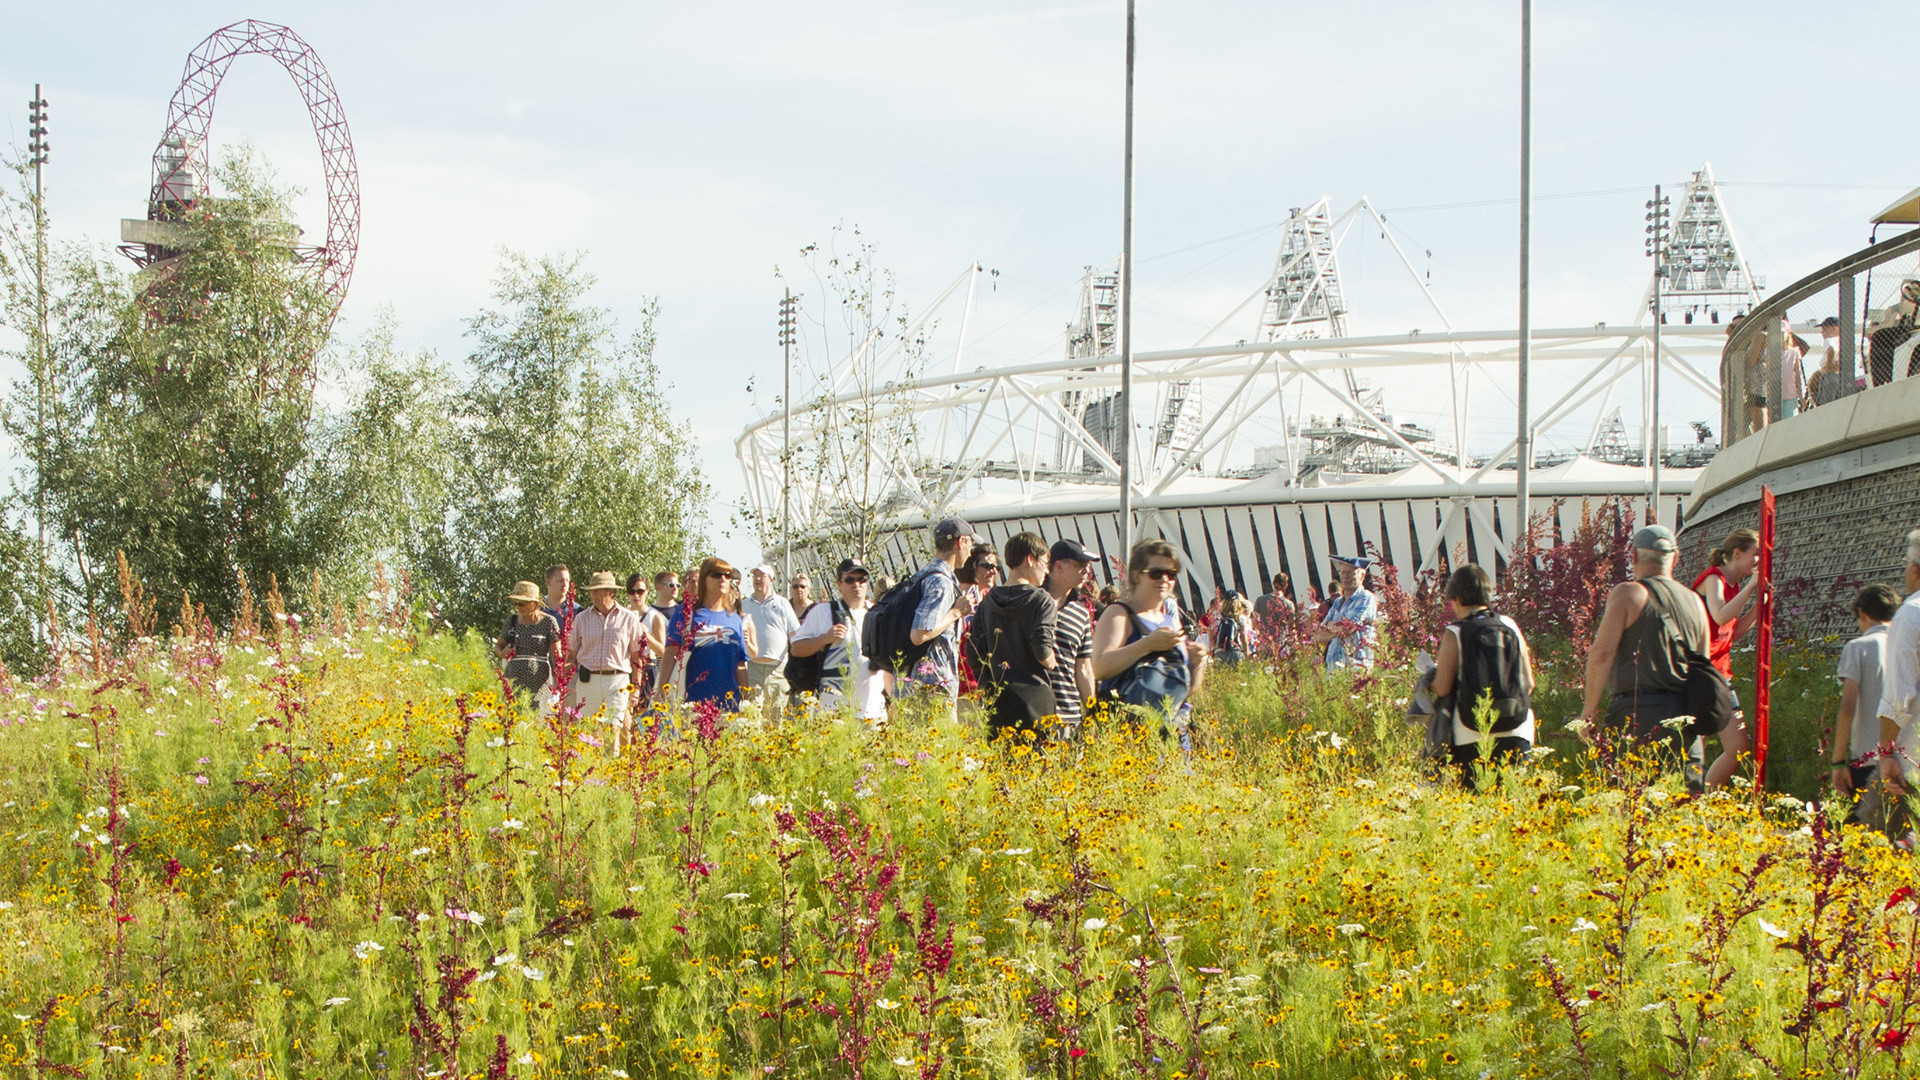 Taking environmental issues seriously - and being seen to do so by appointing a specialist to oversee a new programme - could help negate negative publicity for the Olympic Movement ©Arup